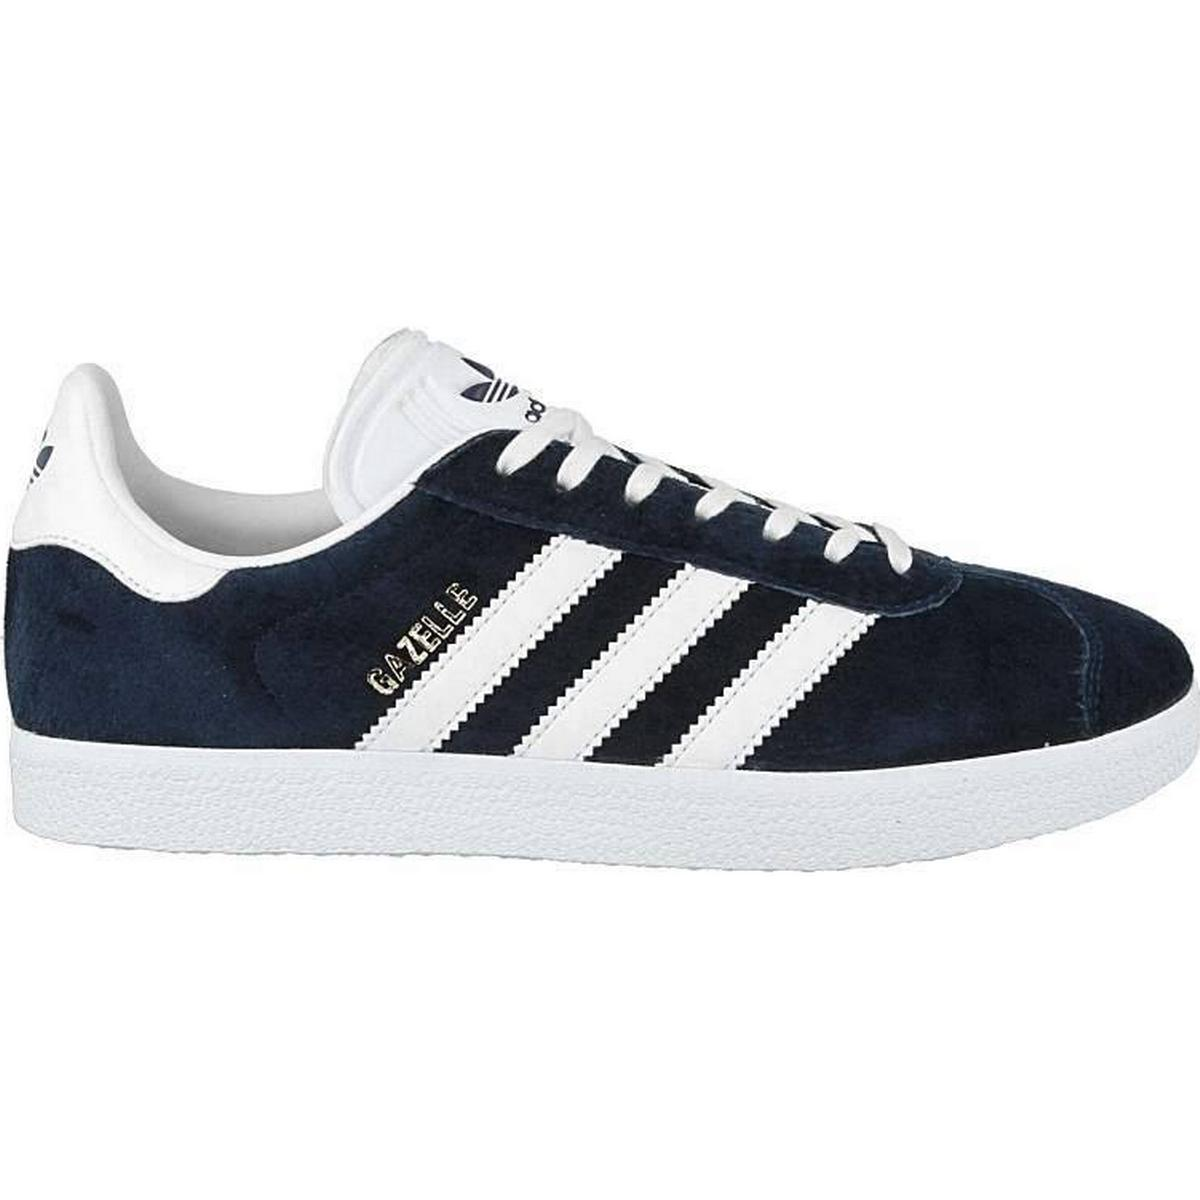 BB6757 Adidas Gazelle Stitch and Turn Collegiate RødHvid